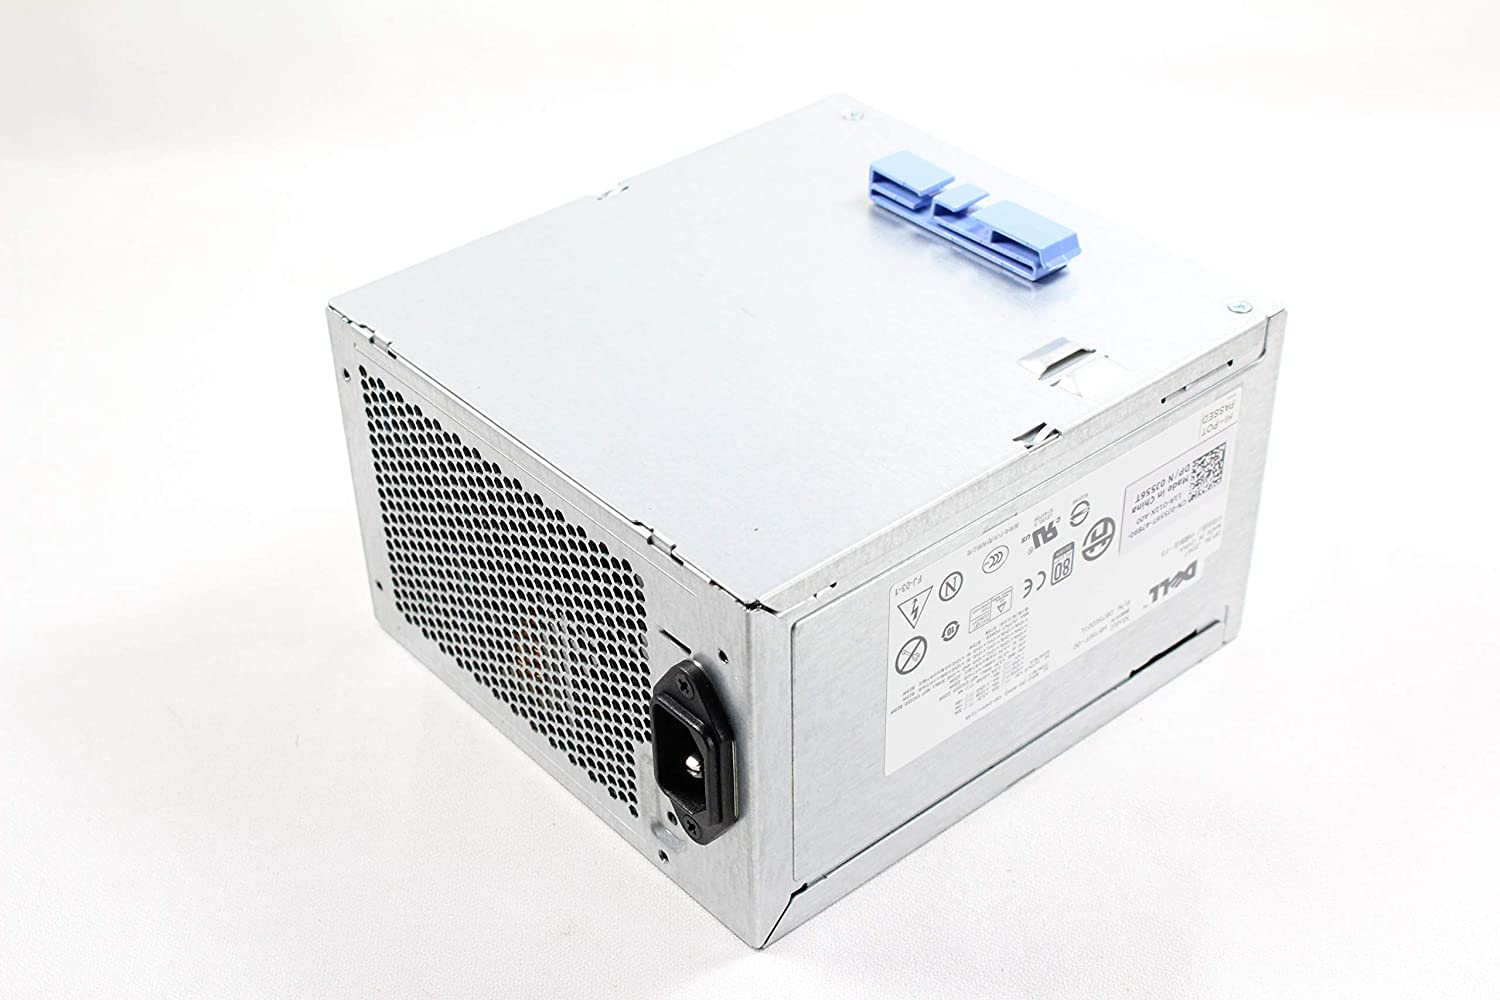 Dell Genuine W299G 875W PSU Power Supply Precision T5500 Workstation Tower Systems Compatible Part Numbers: W299G, J556T, U595G Model Numbers: NPS-875BB A, N875EF-00, H875EF-00